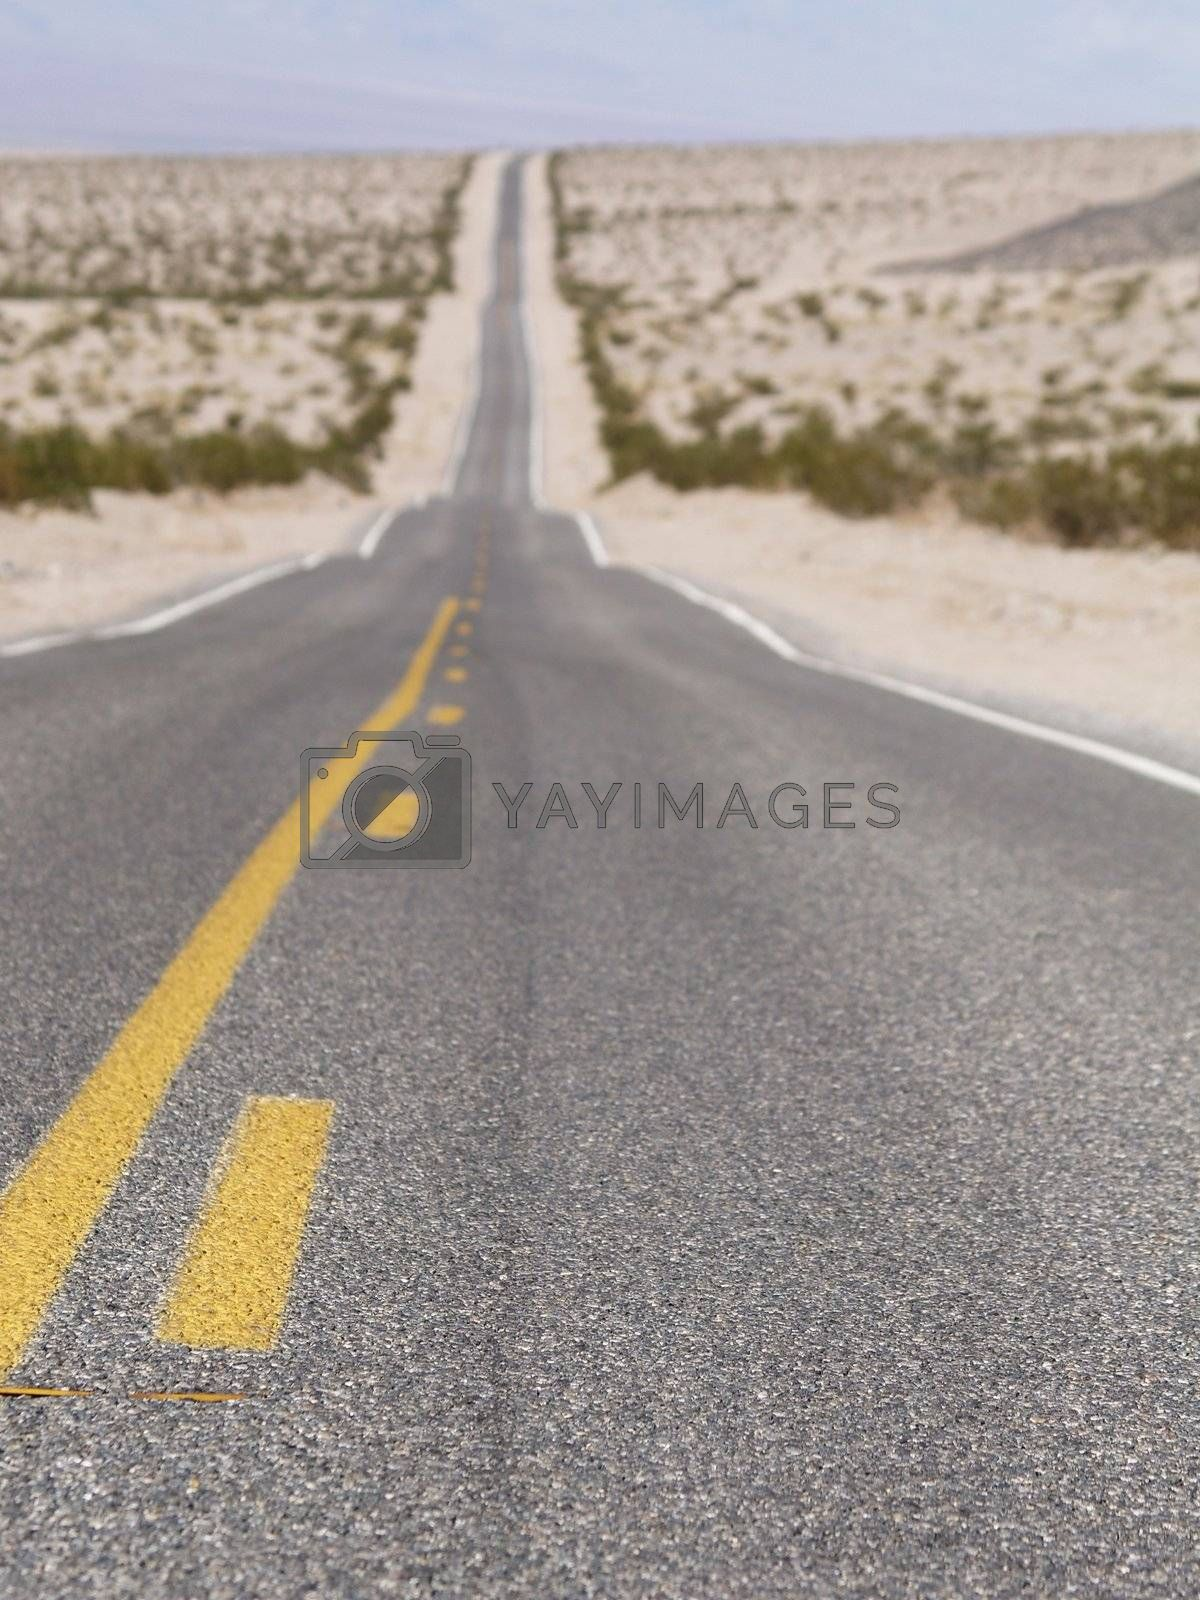 Endless road at the desert